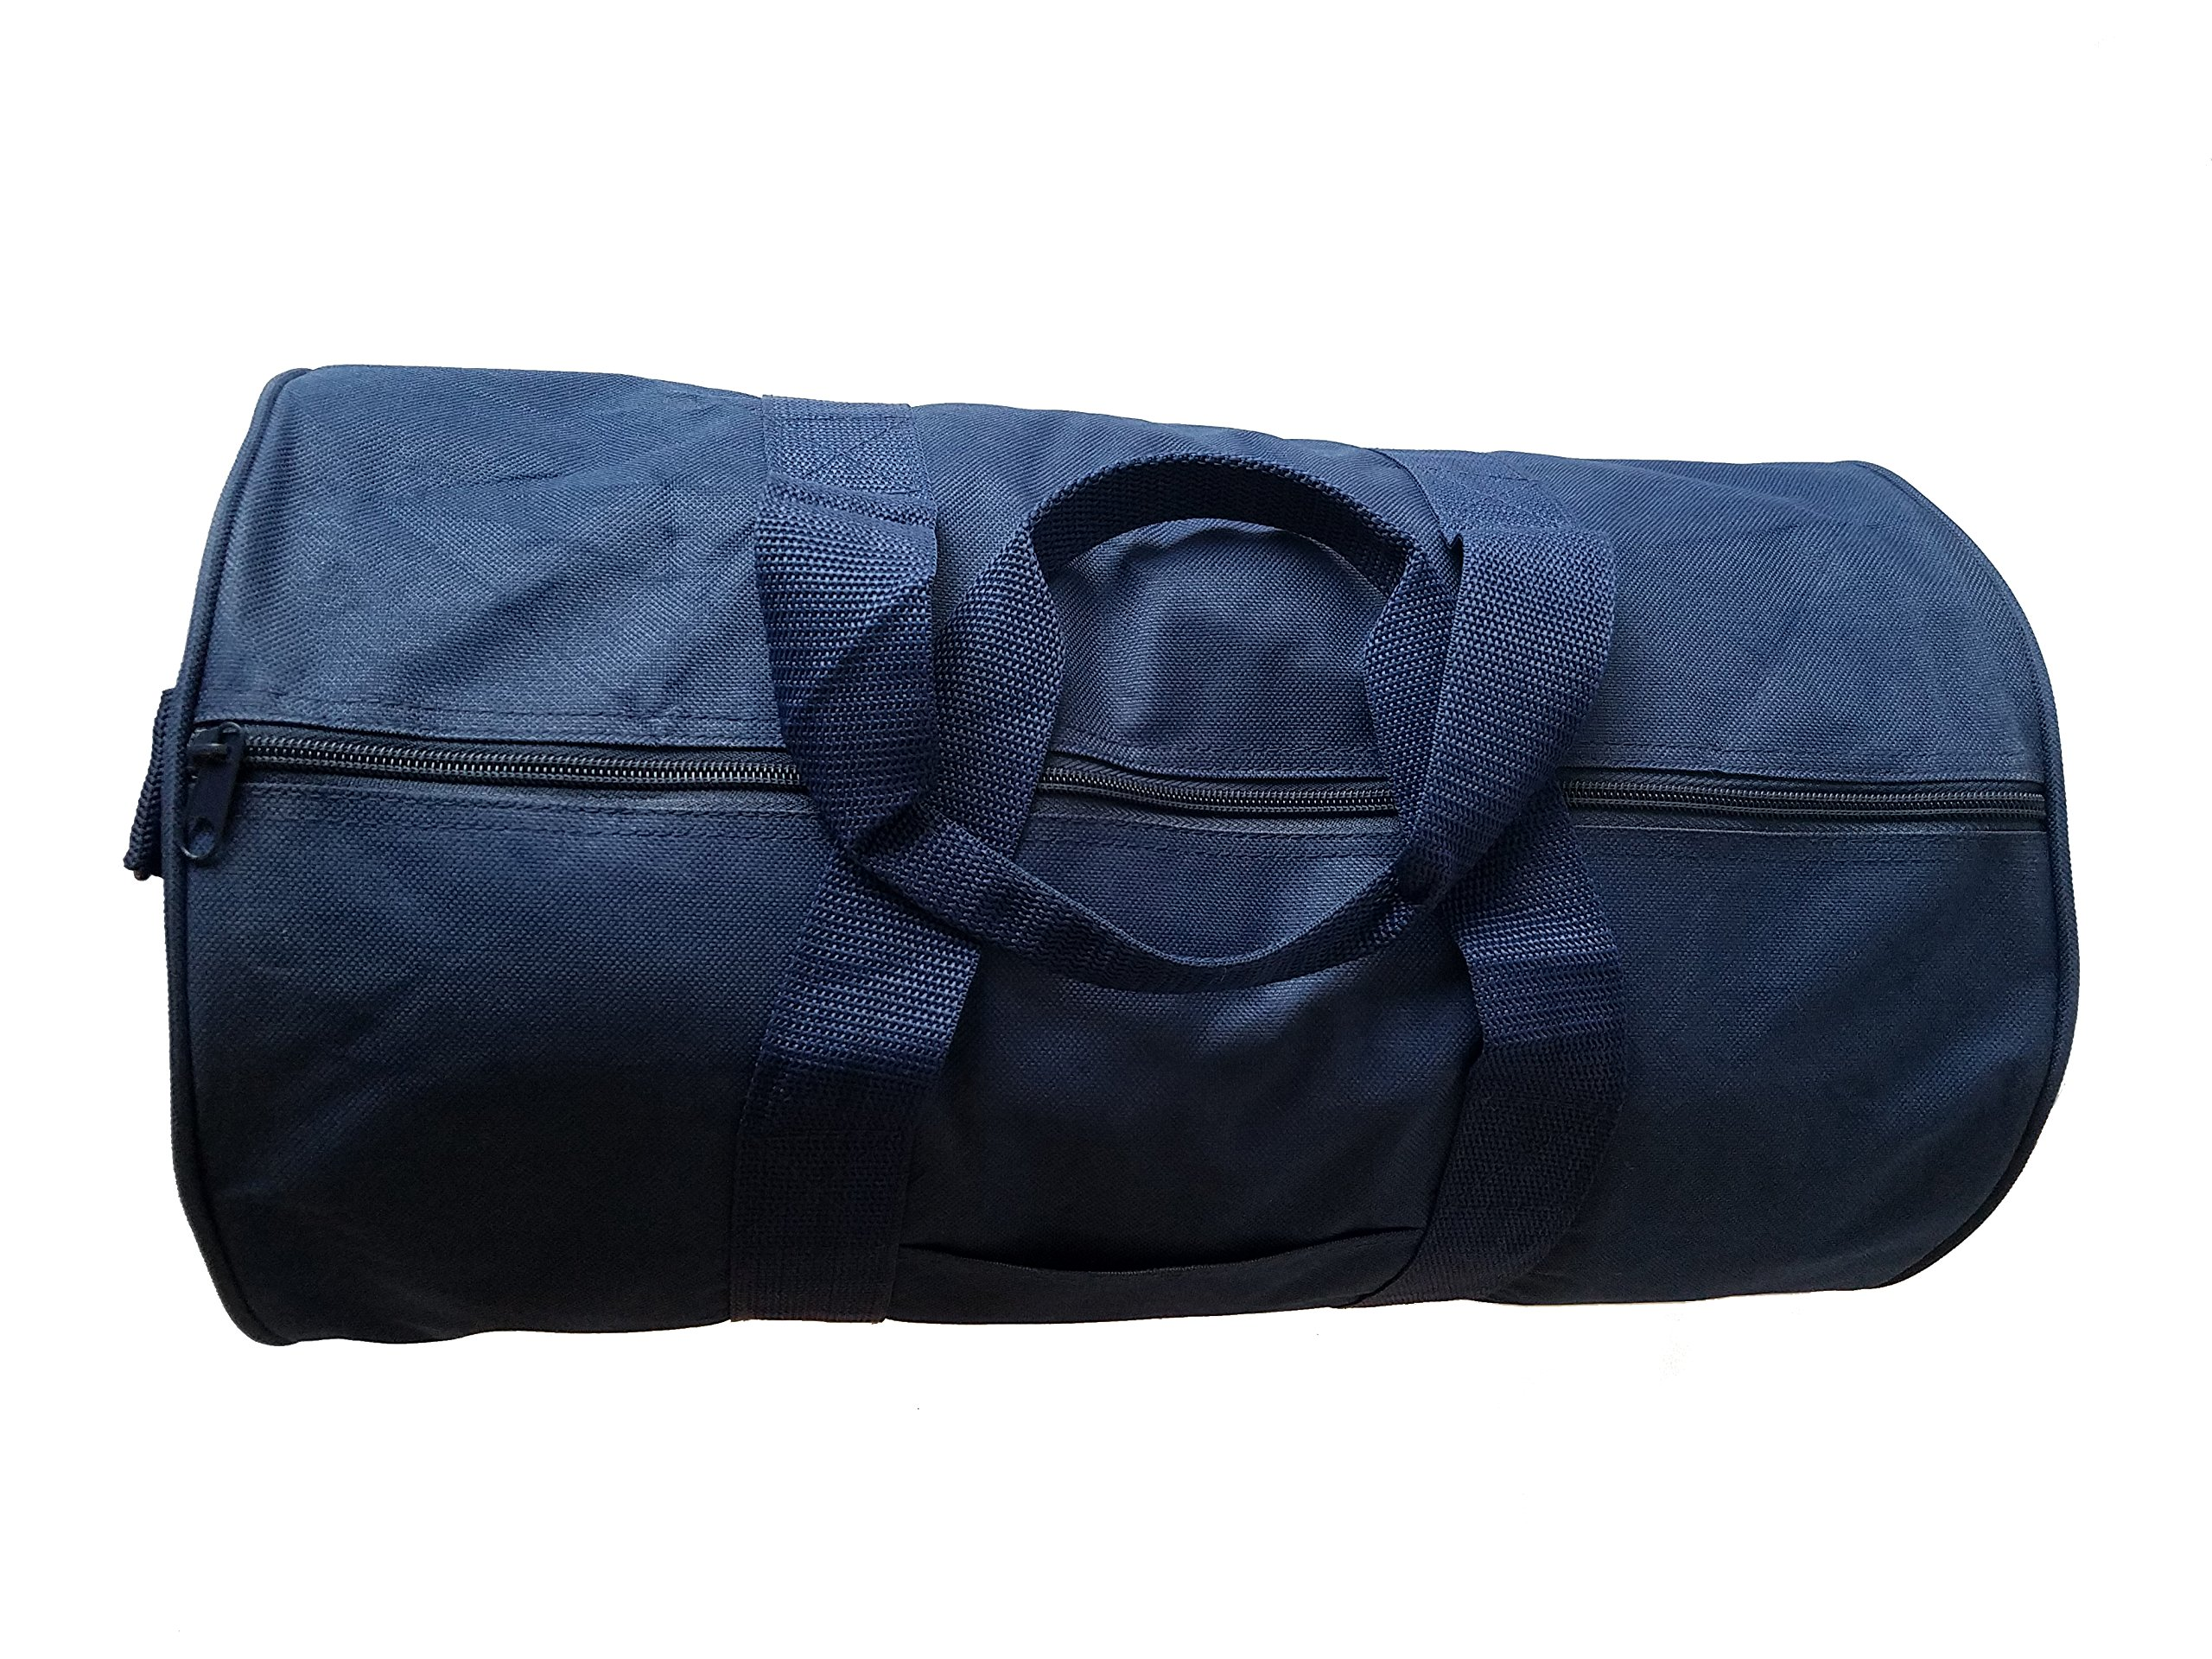 ImpecGear Round Duffel Sports Bags, Travel Gym Fitness Bag. (Navy) by ImpecGear (Image #4)